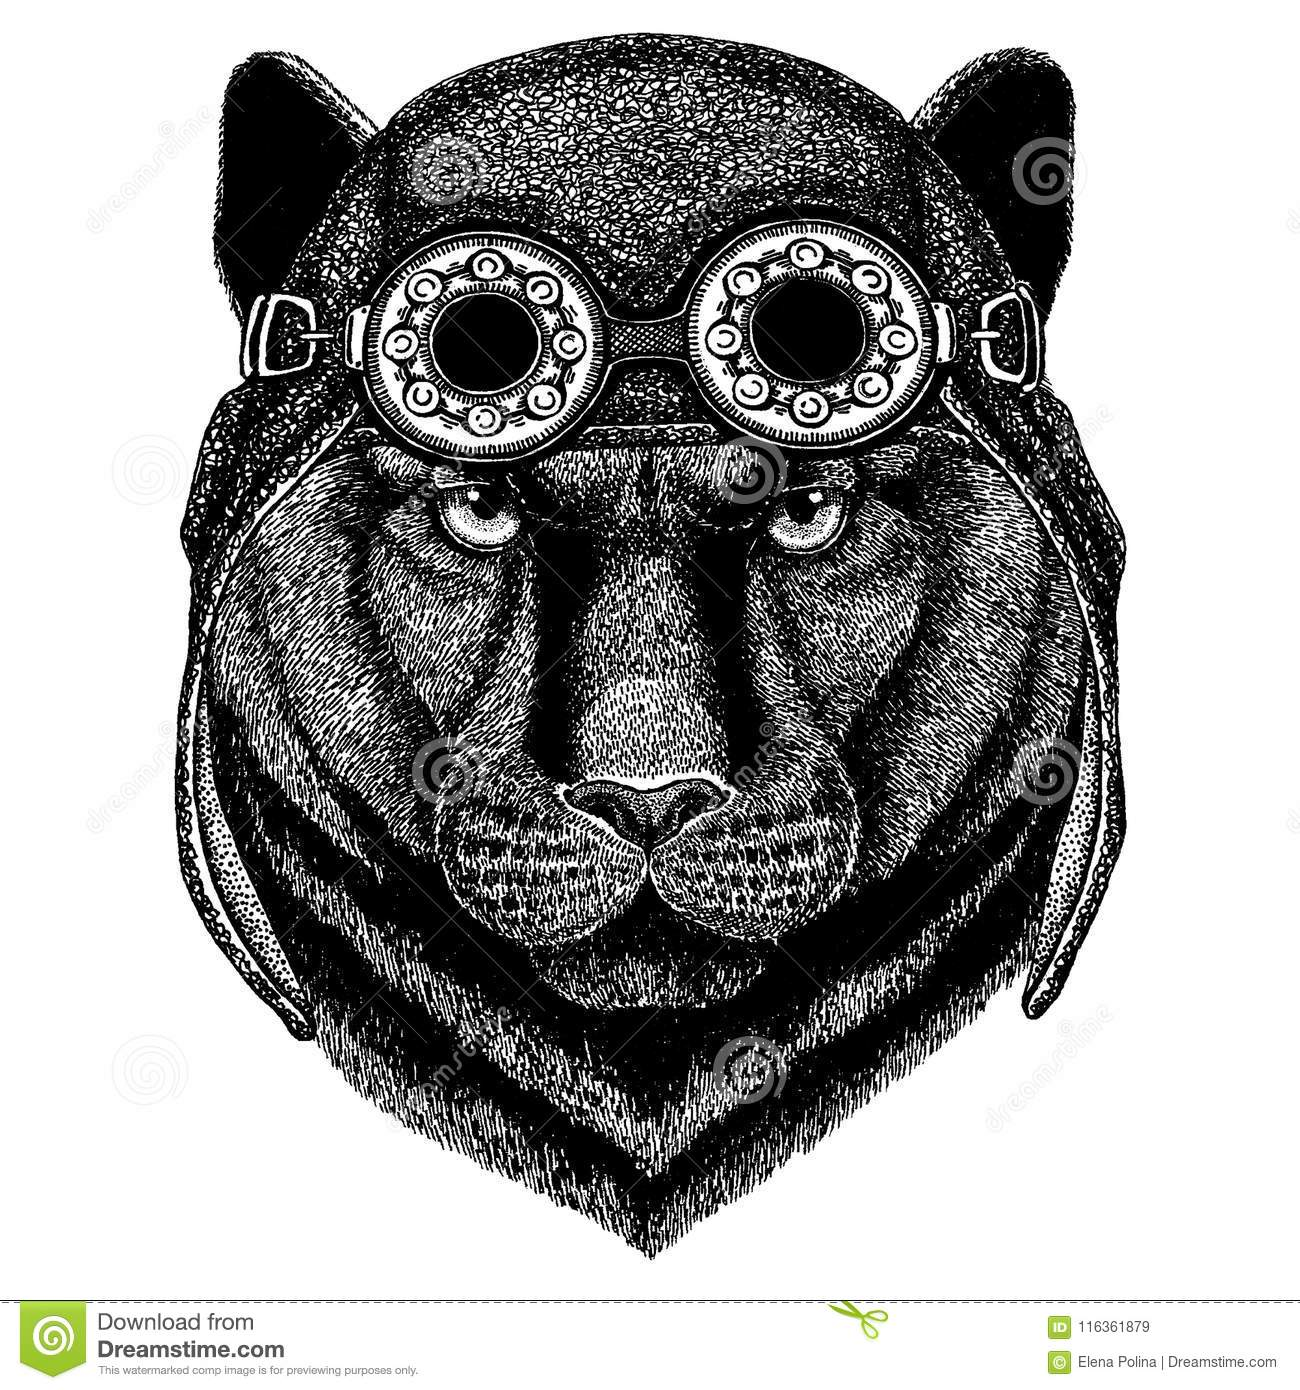 576ec7a52 Cute animal wearing motorcycle, aviator helmet Panther Puma Cougar Wild cat  Hand drawn image for